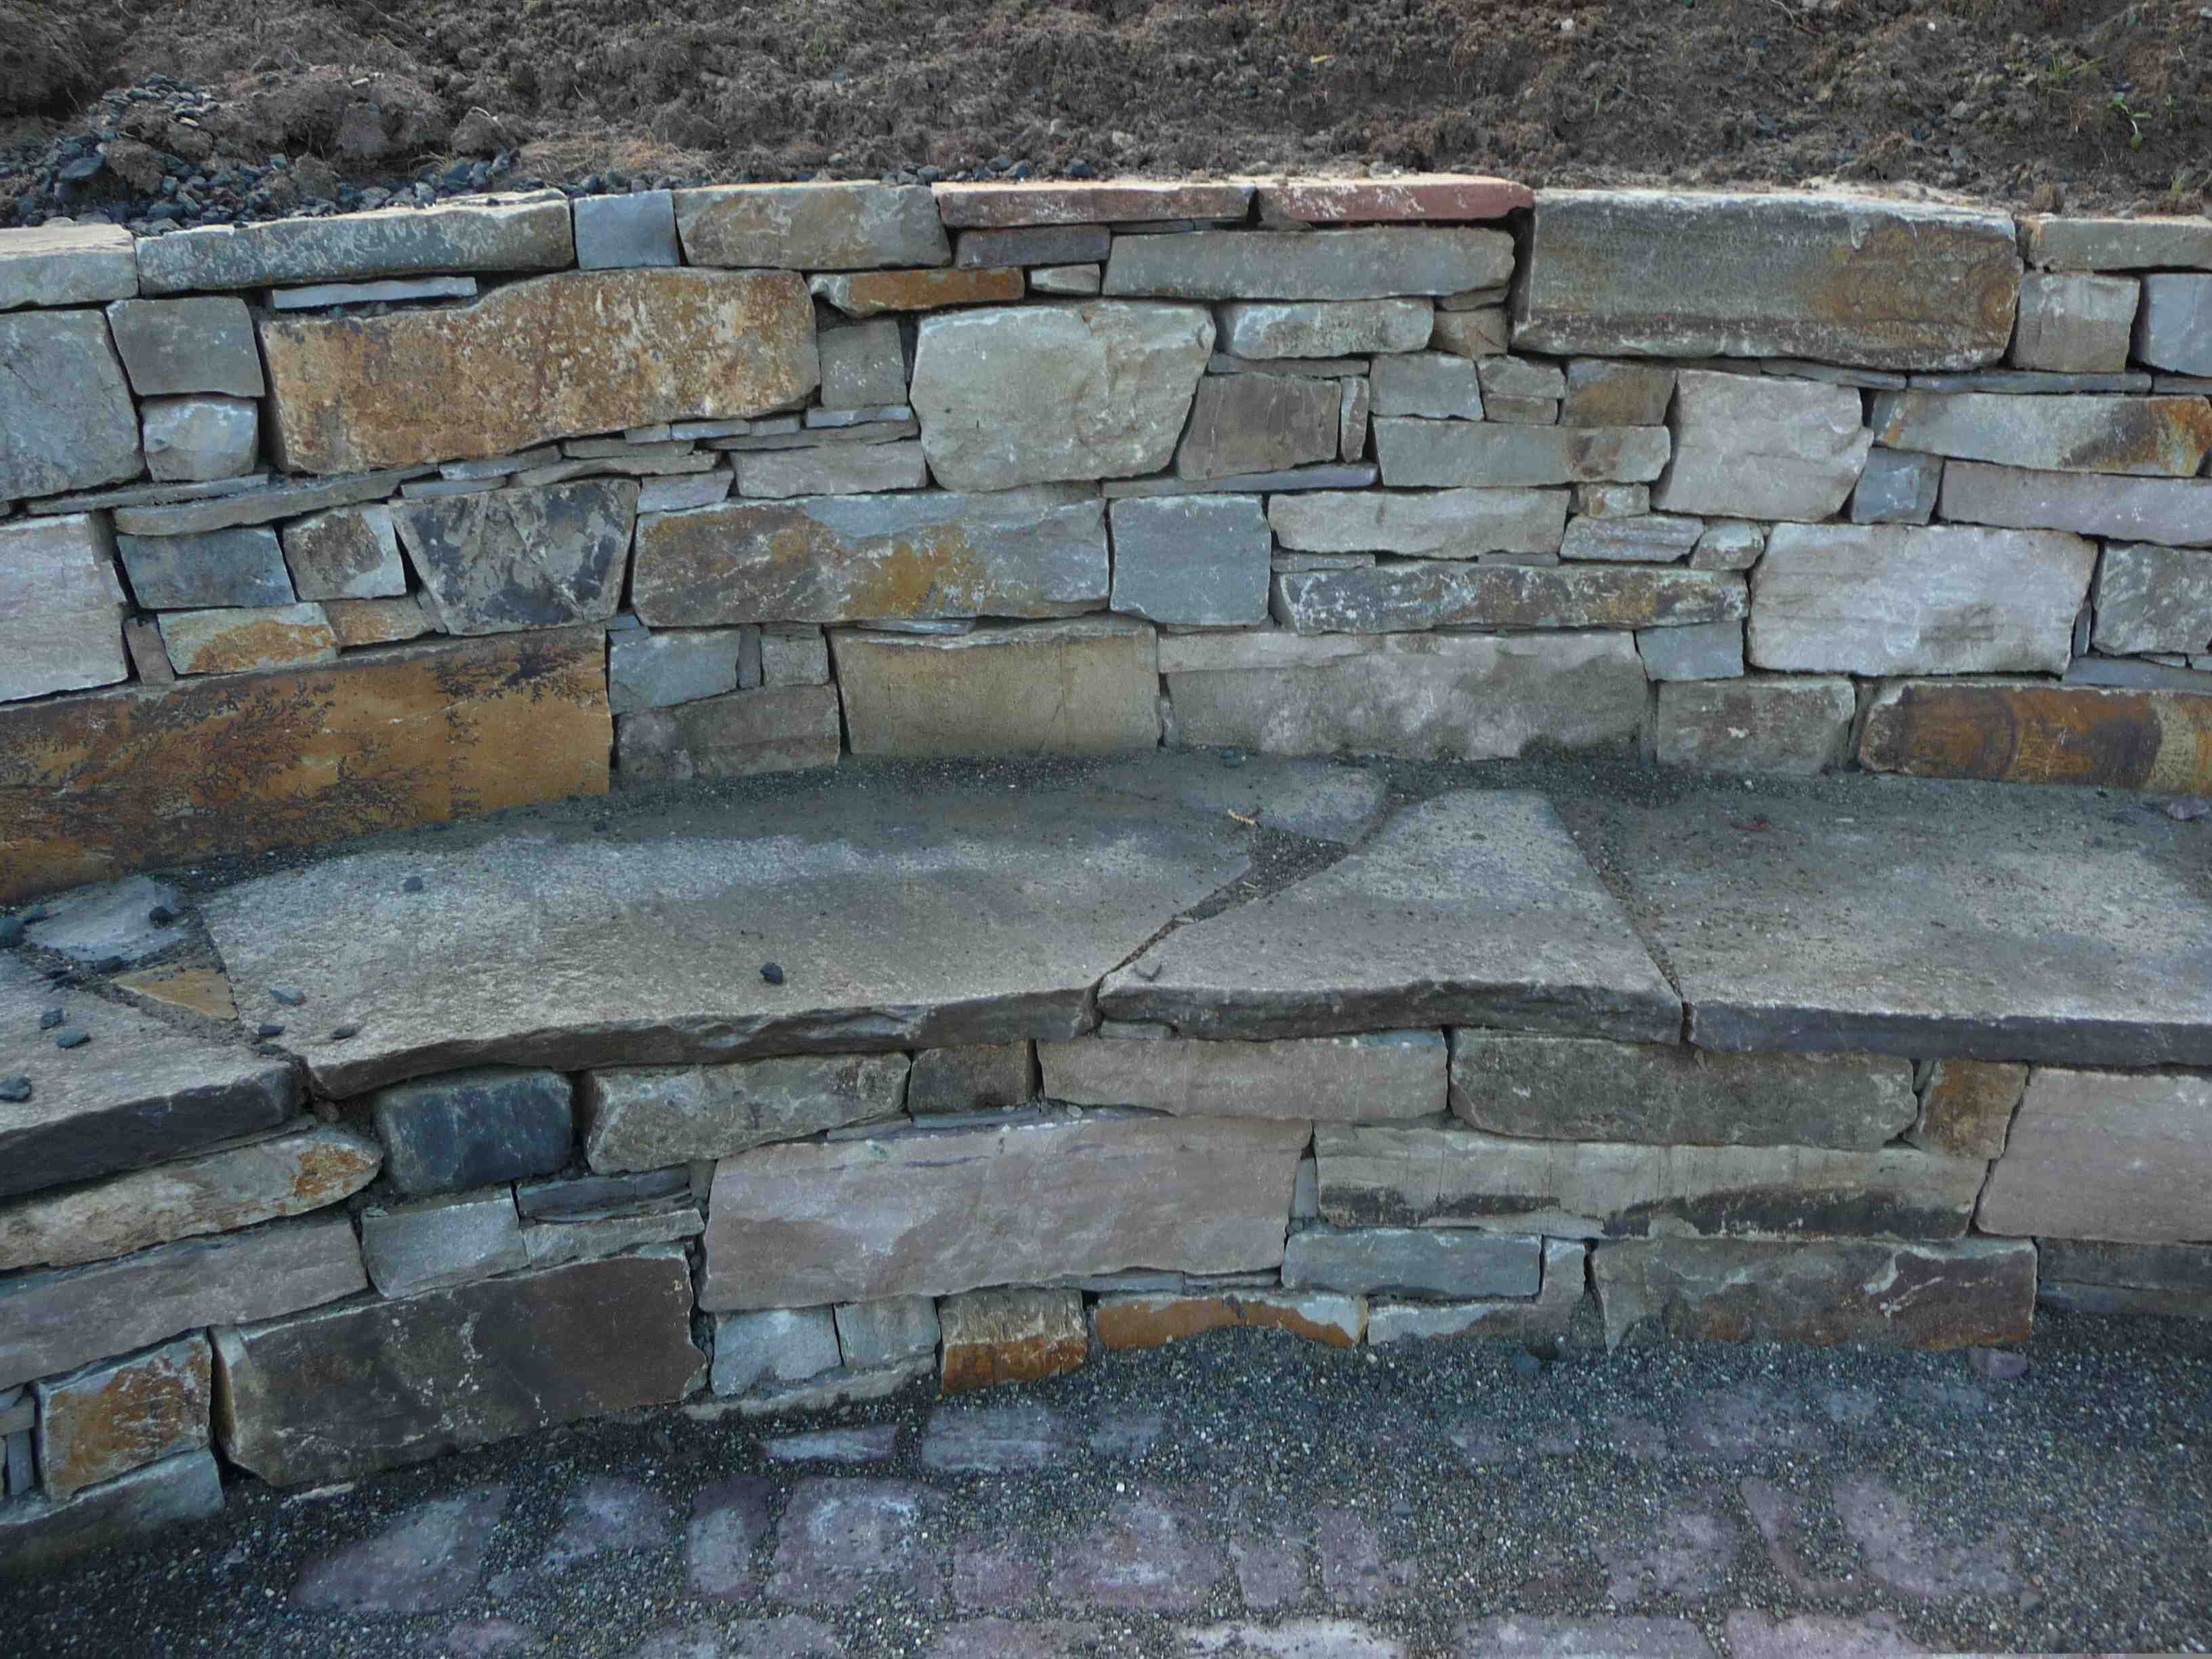 Building A Stone Wall : Stone foundation symposium meets to build learn in